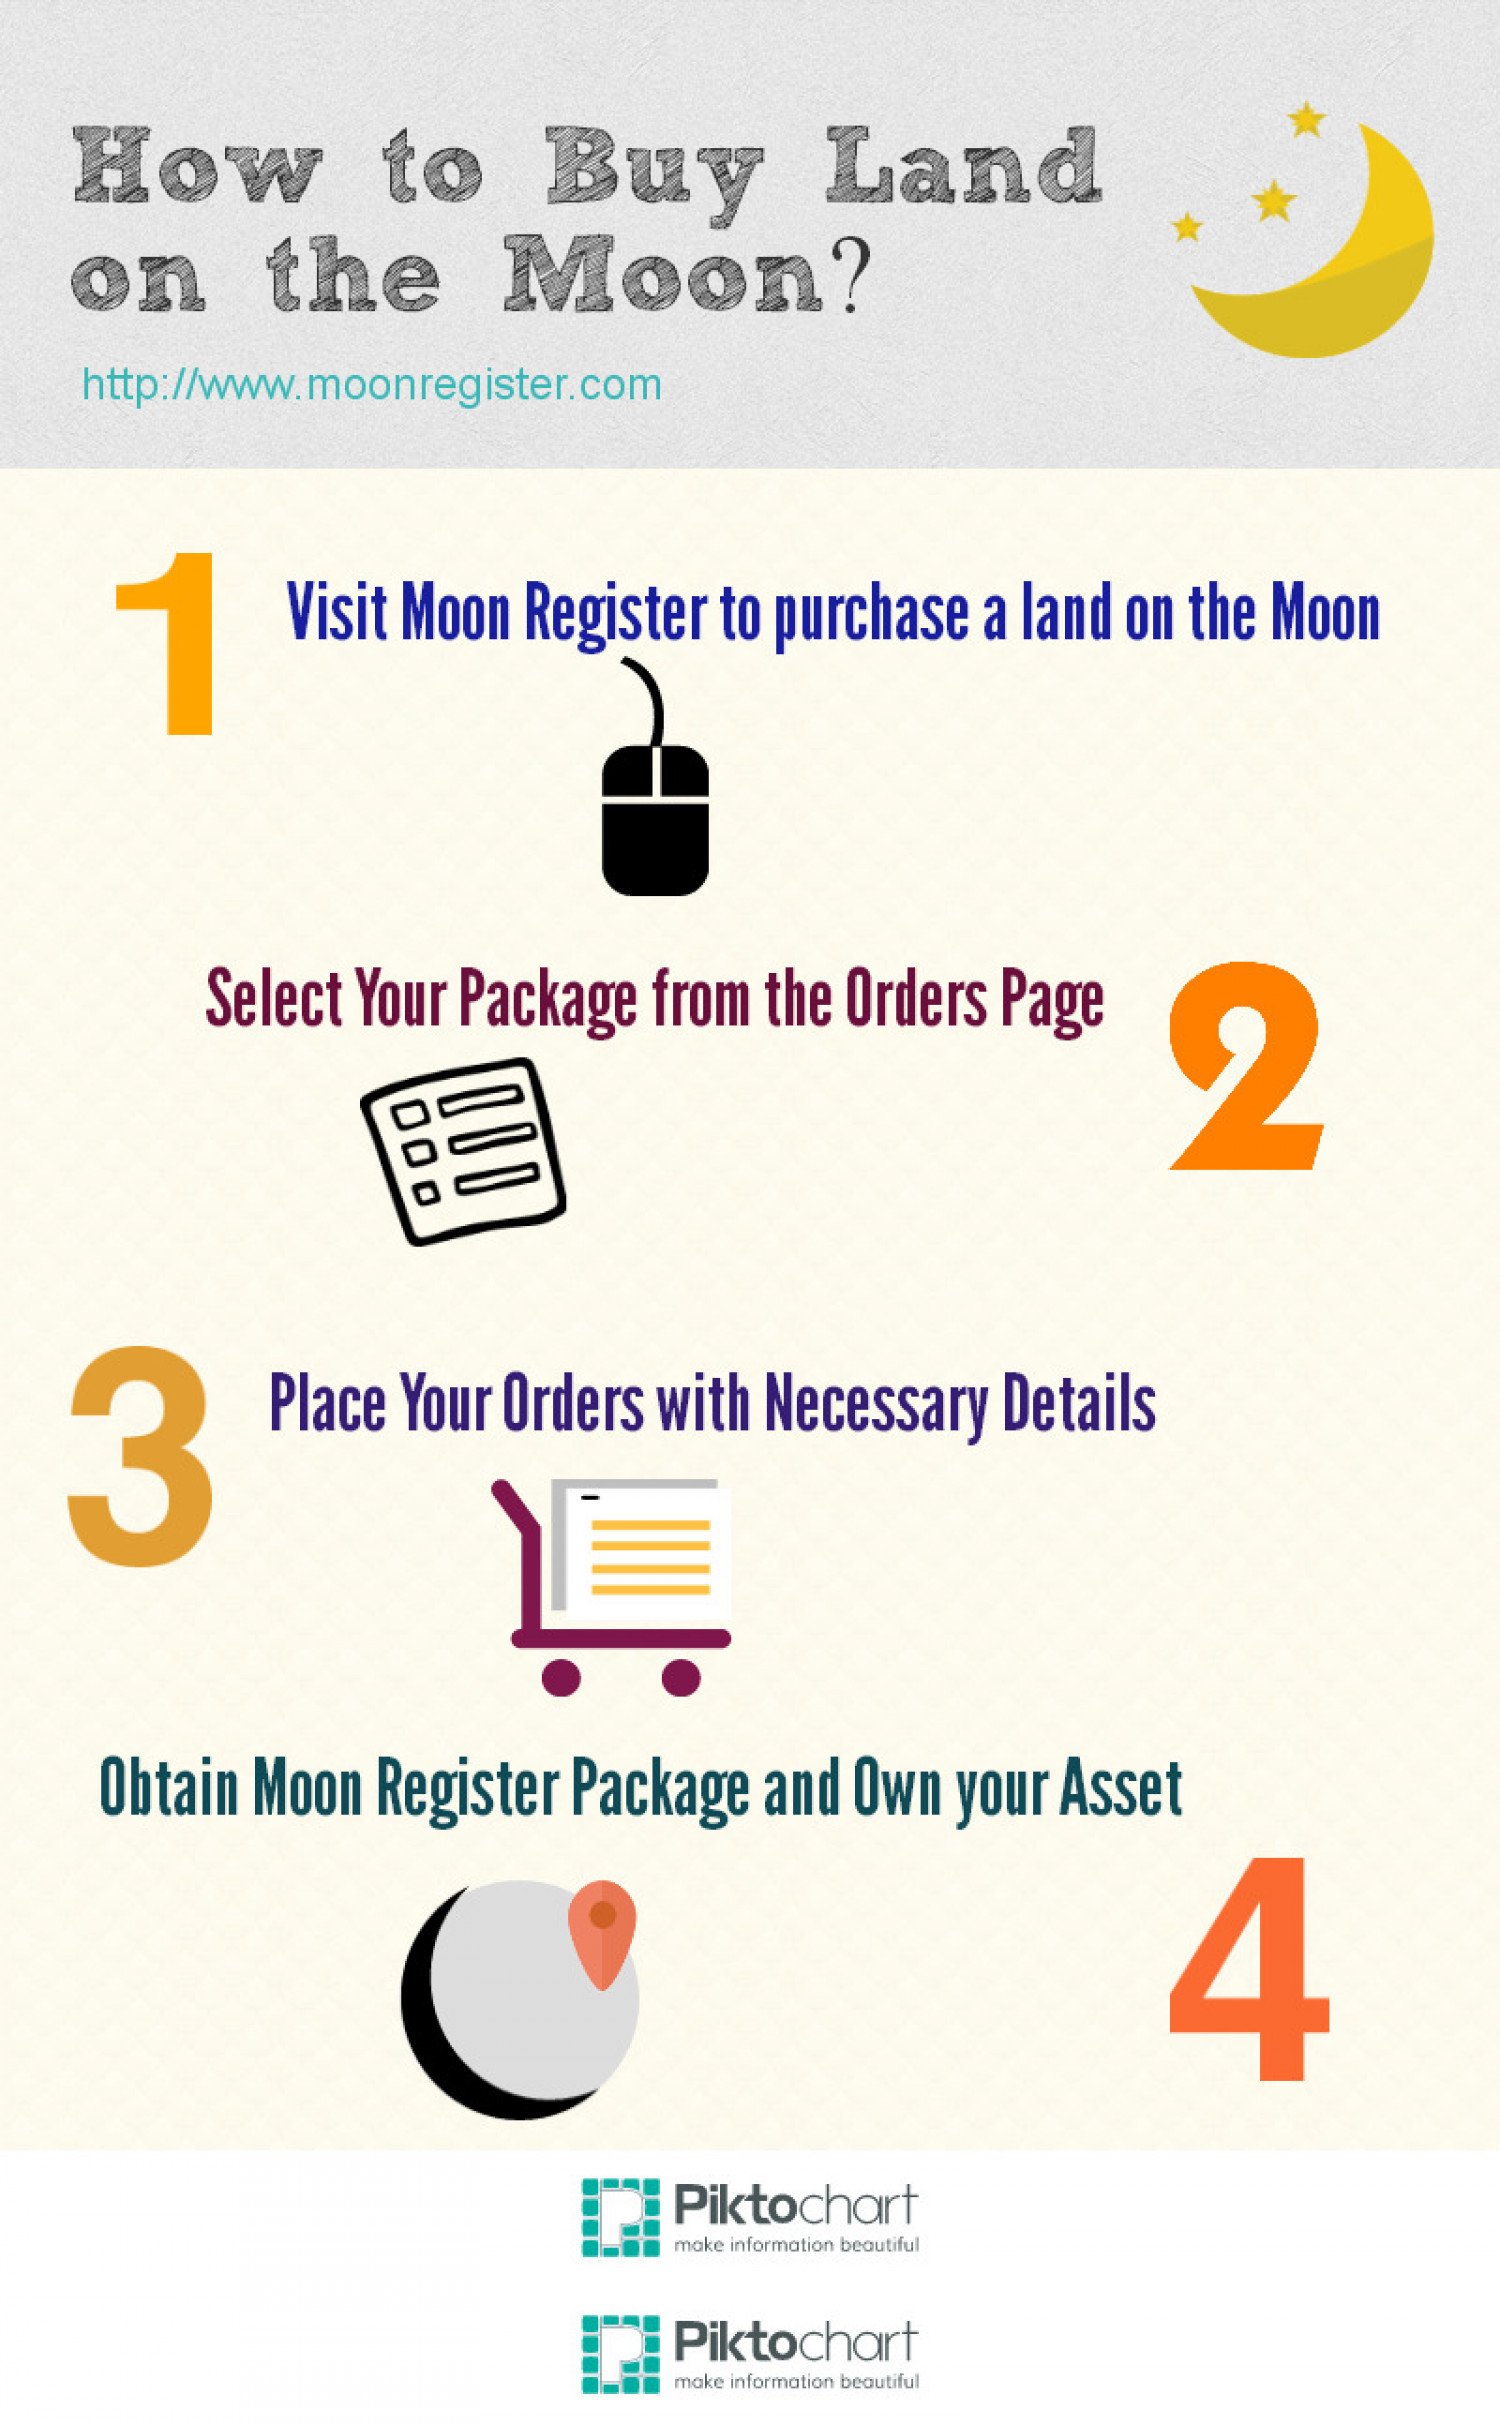 How to Buy Land on the Moon Infographic